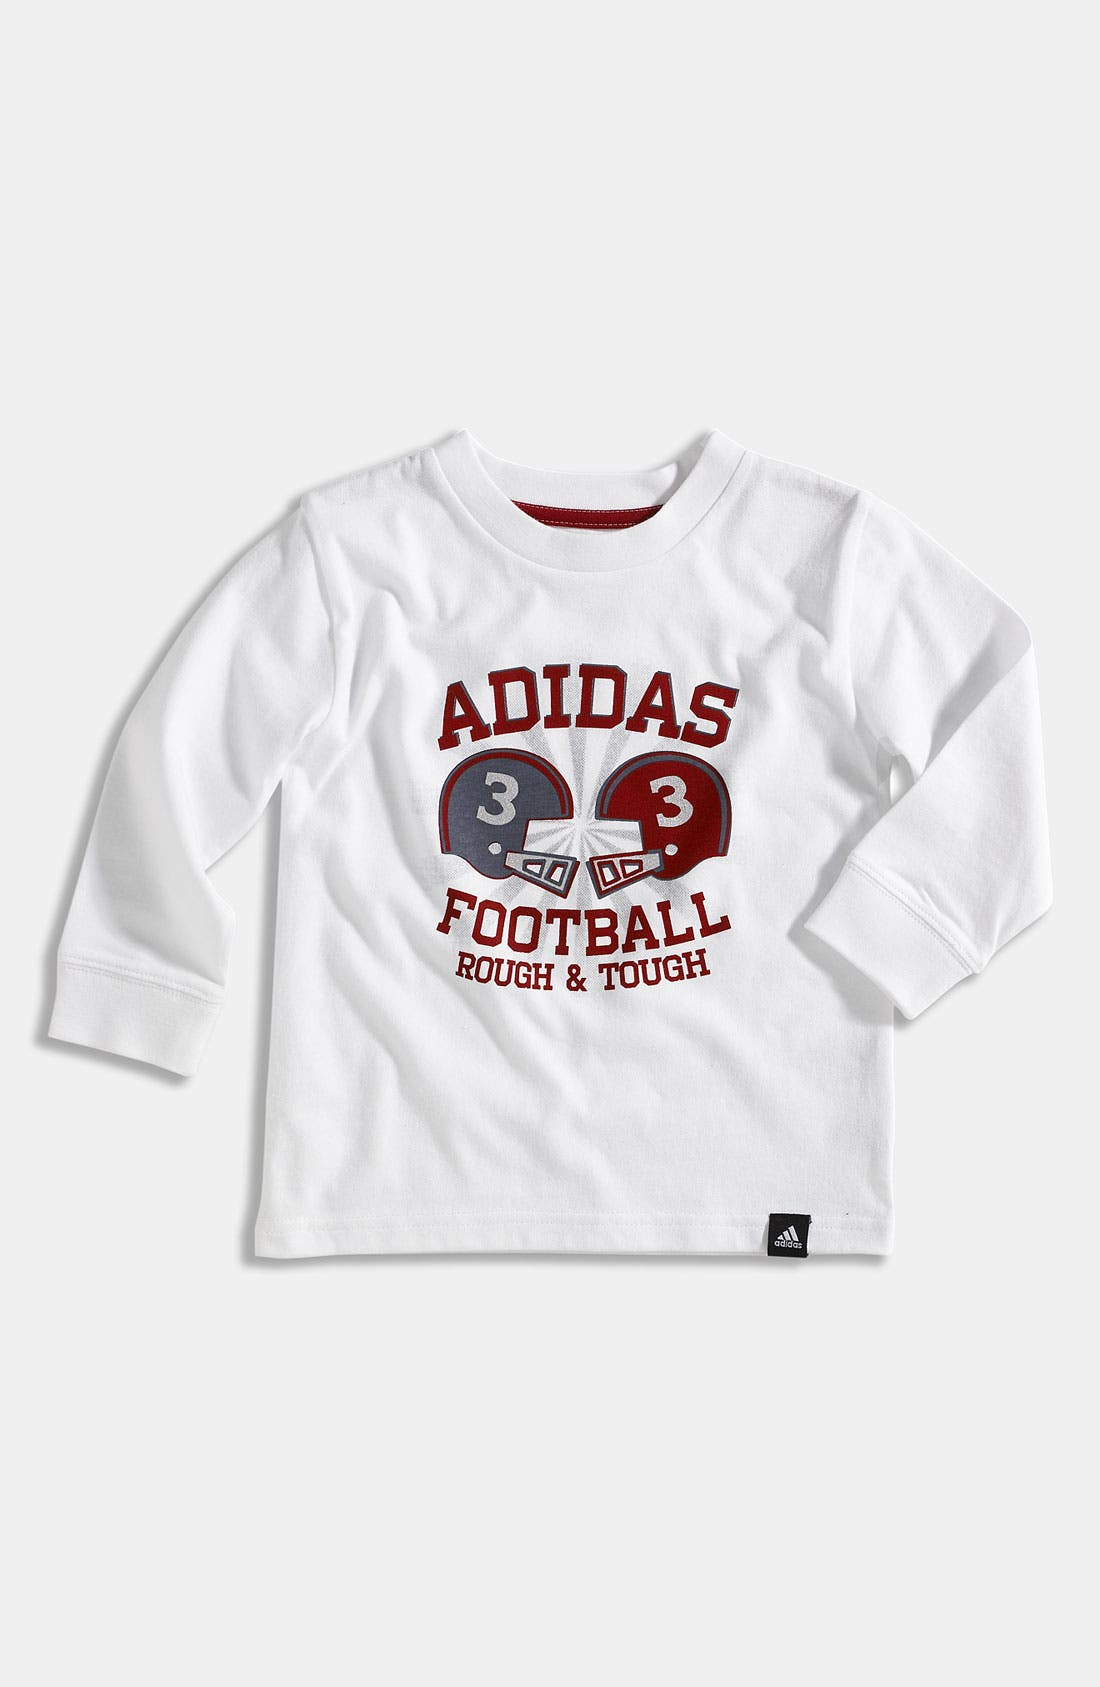 Main Image - adidas 'Rough and Tough' T-Shirt (Toddler)